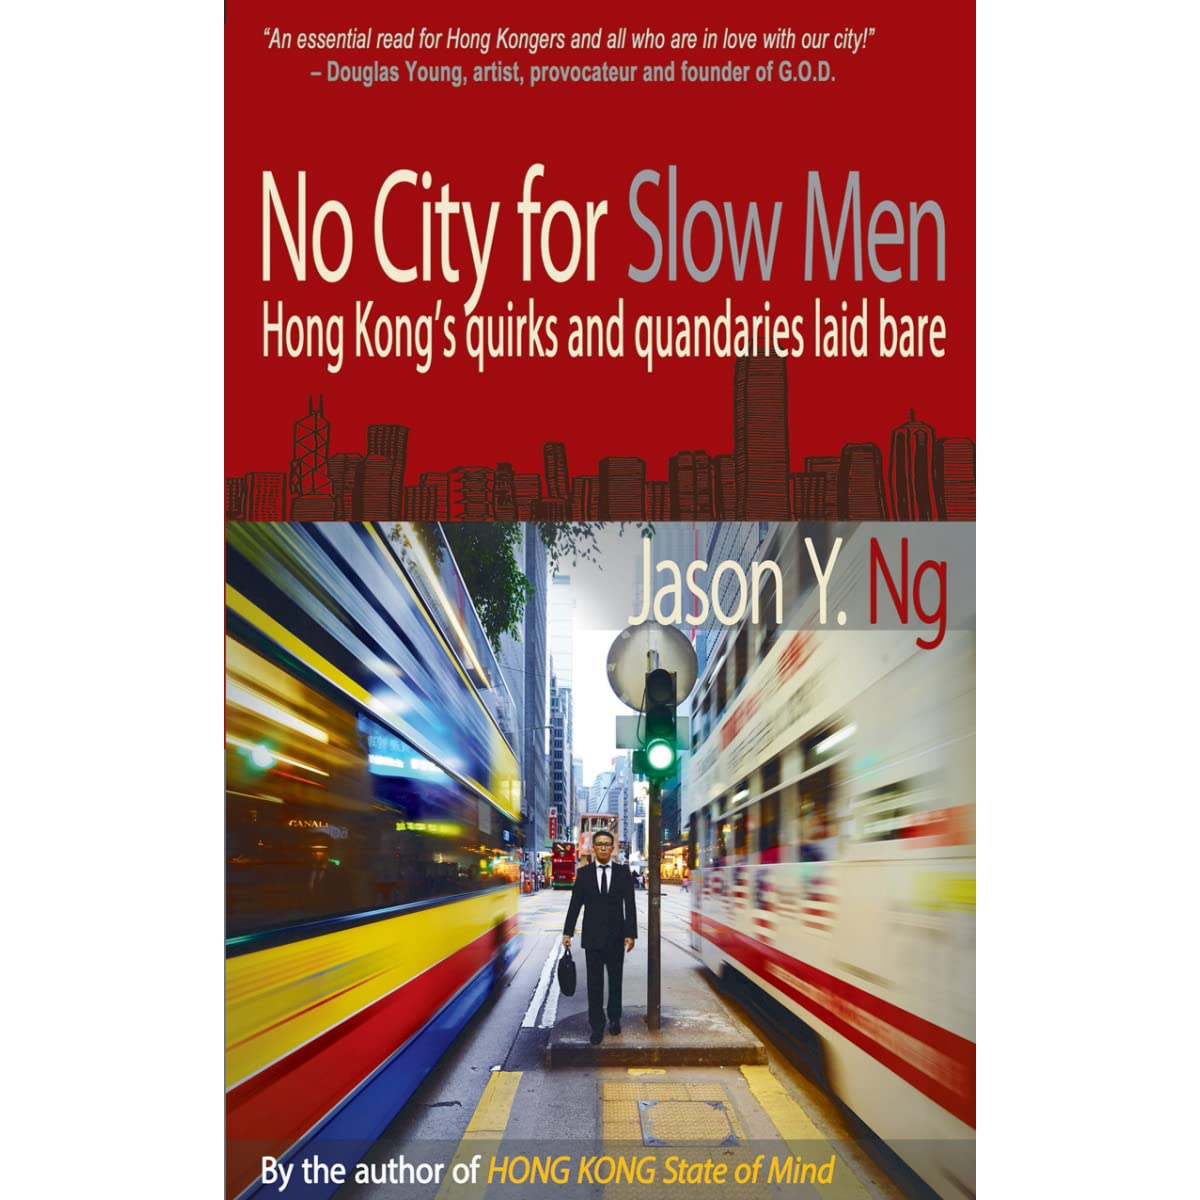 No City for Slow Men: Hong Kong's quirks and quandaries laid bare by Jason  Y. Ng